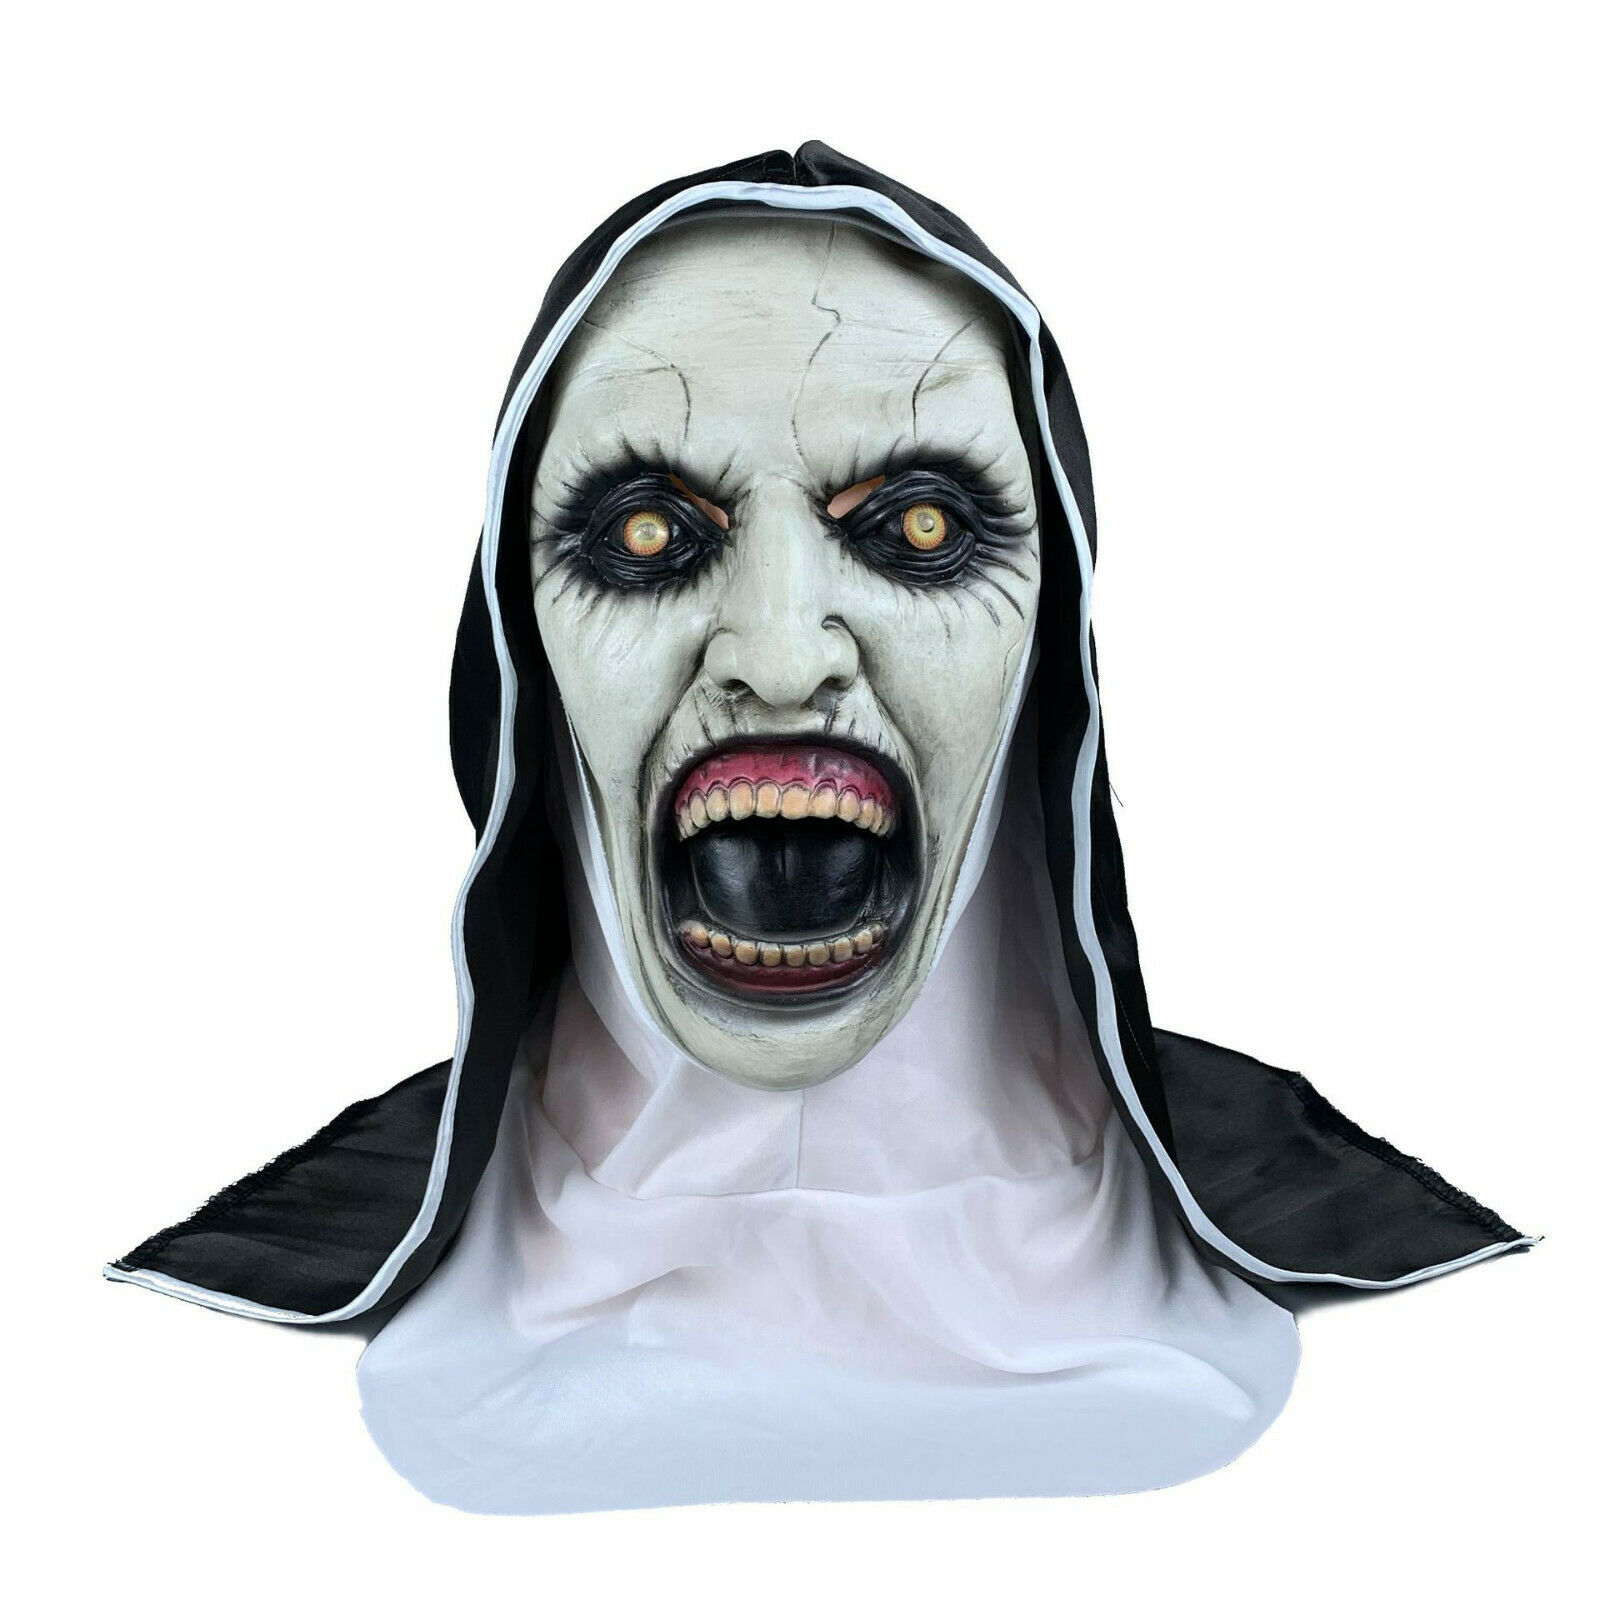 The Scary Open Mouth Nun Latex Mask w/Headscarf Horror Cosplay Halloween Costume Accessories